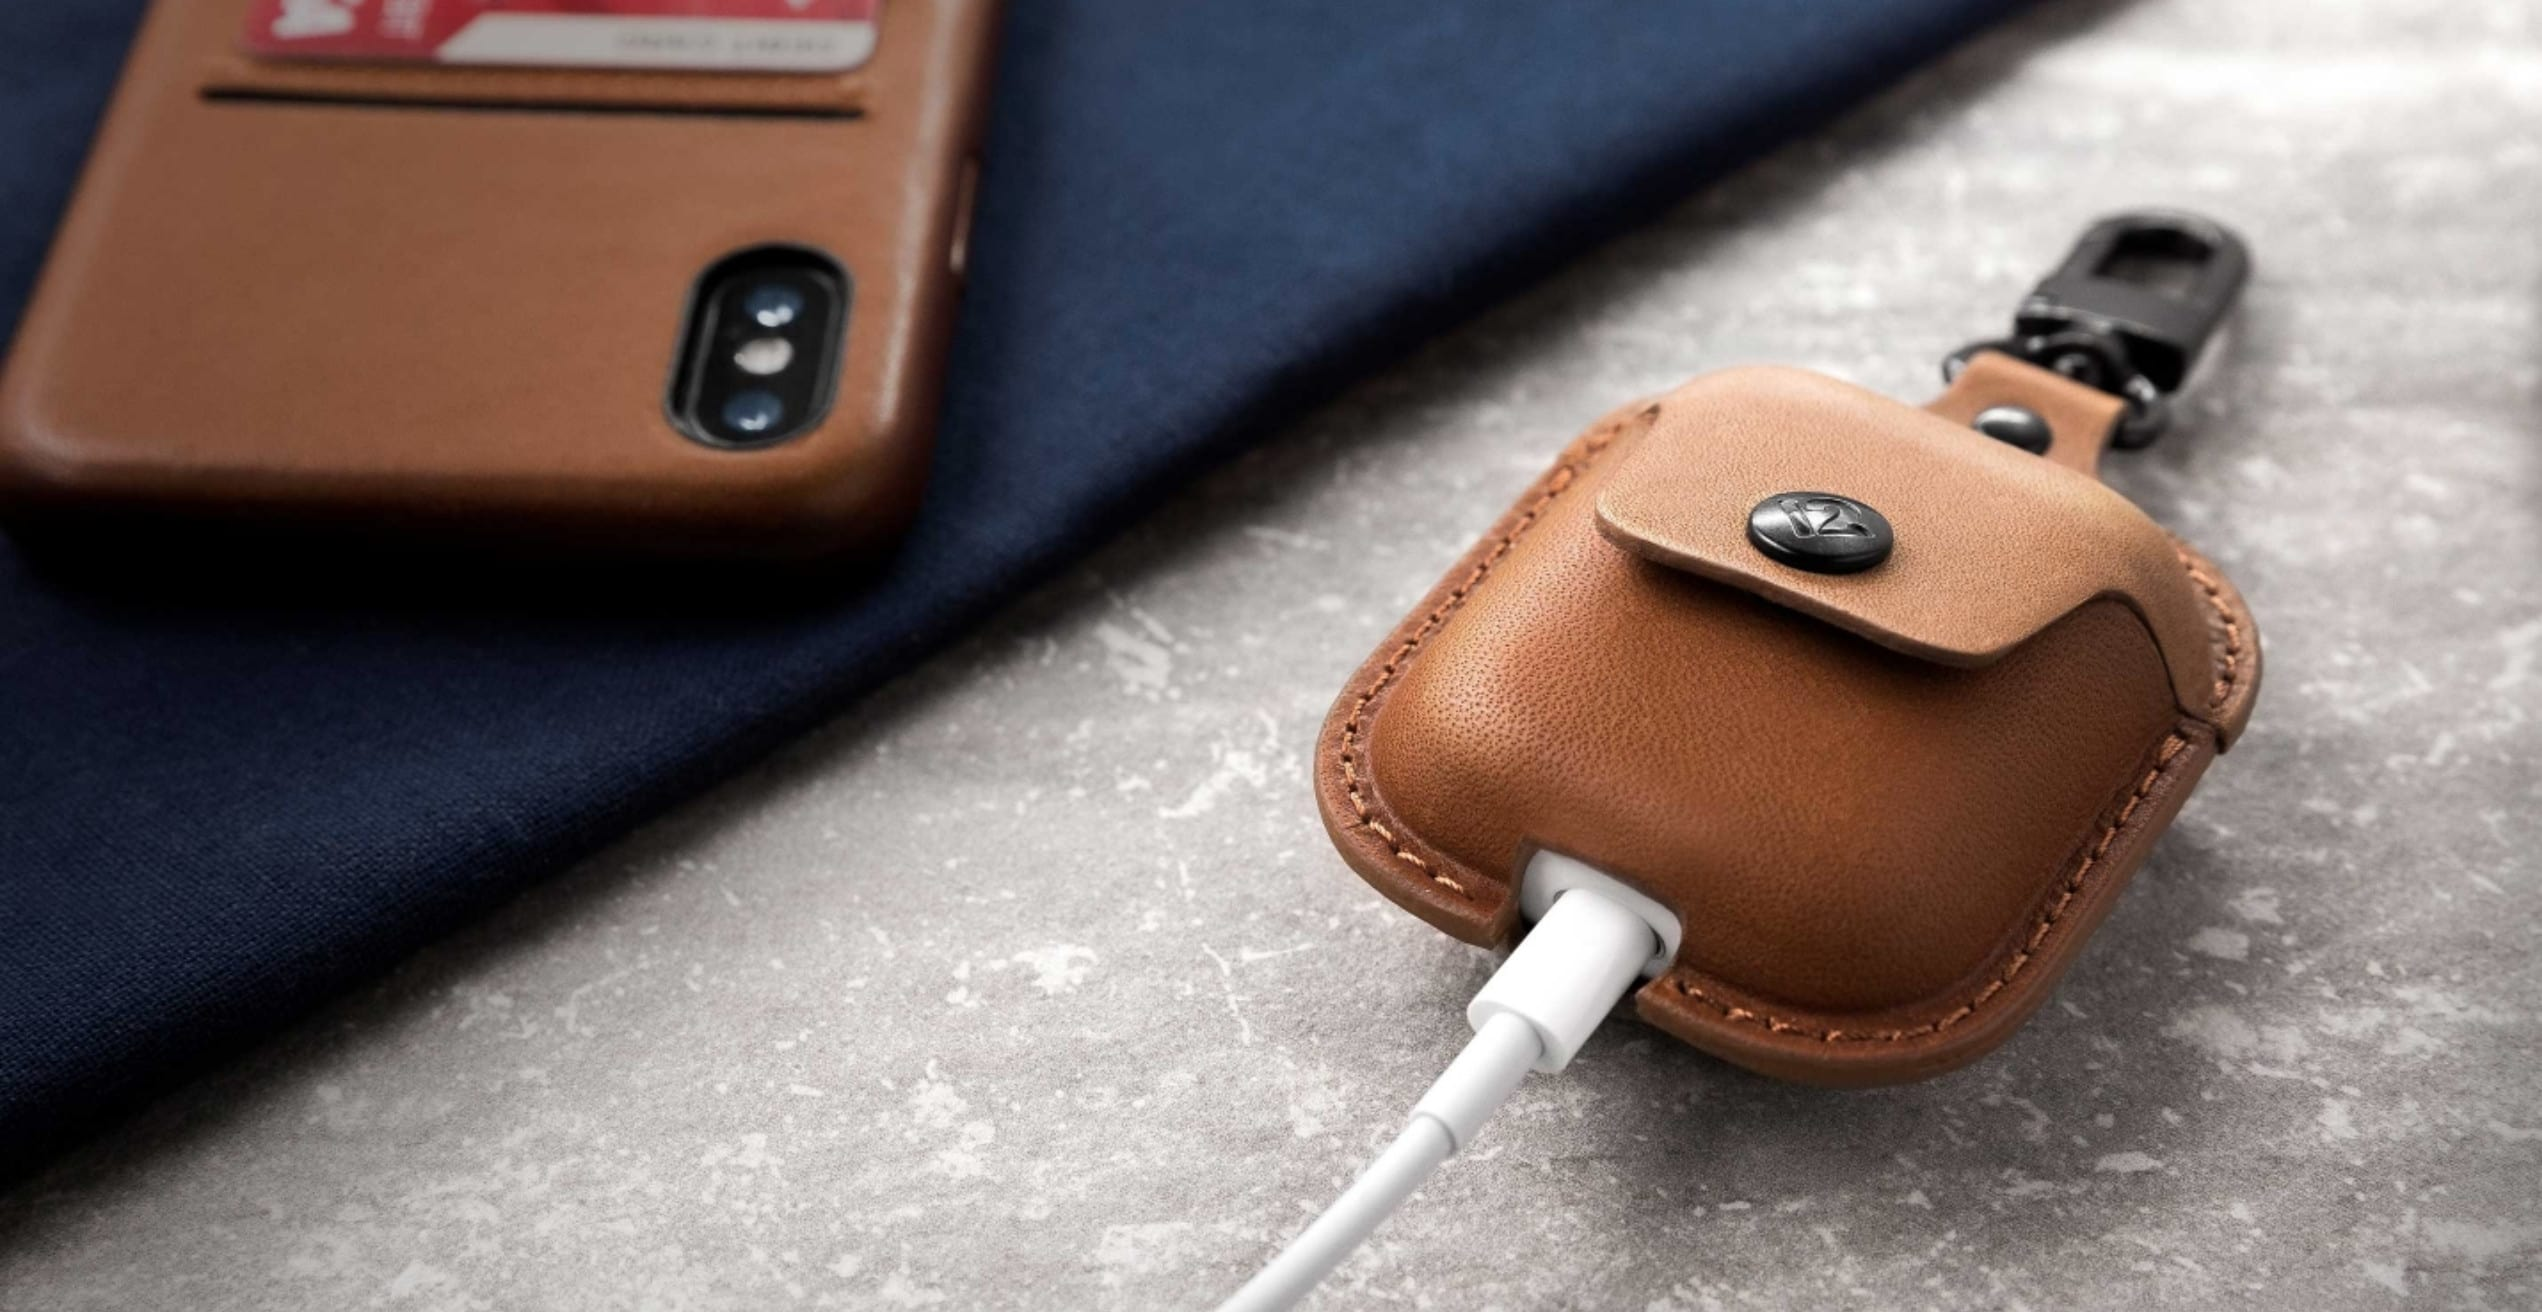 With the handy cutout on the bottom, you can recharge your AirPods without ever taking them out of this chic case.